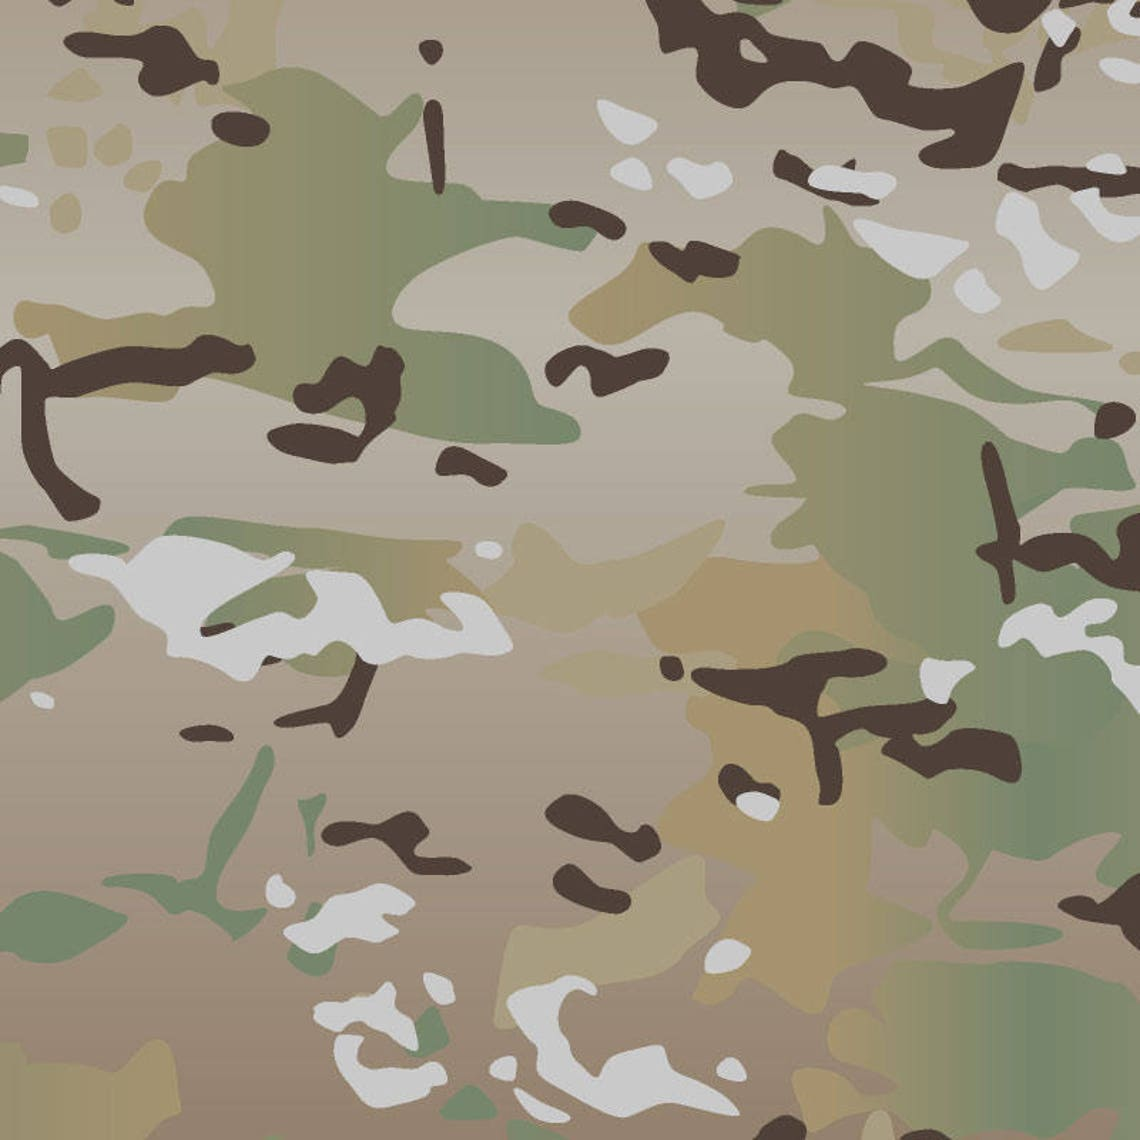 Original Multicam Vector Camouflage Pattern For Printing Etsy Jpg 1140x1140 Camo Large Printable Templates